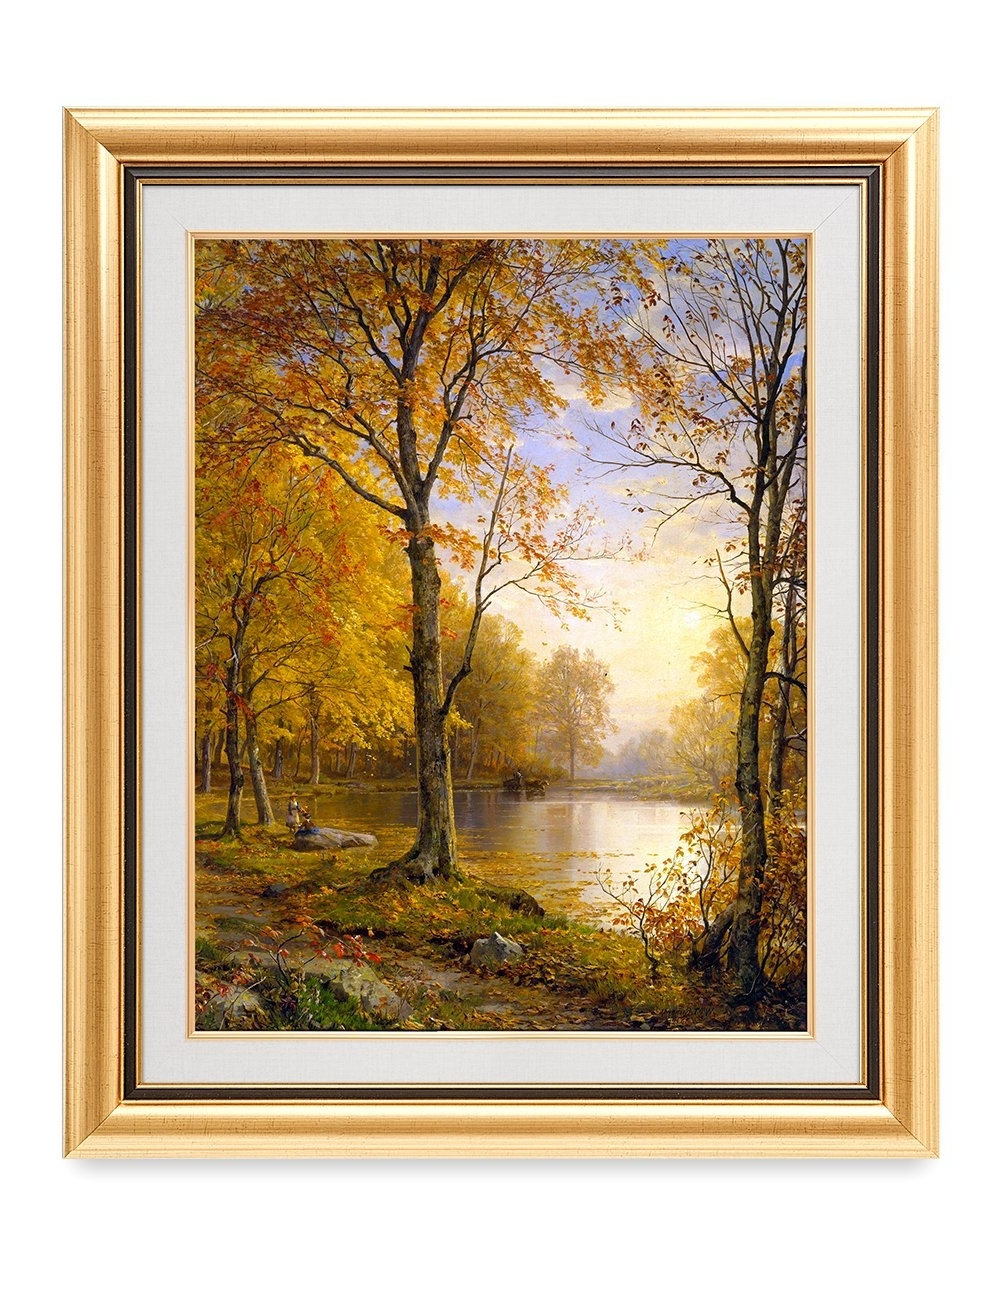 Most Recent Decorarts – 'indian Summer', William Trost Richards; Classic Art Intended For Framed Classic Art Prints (View 10 of 15)